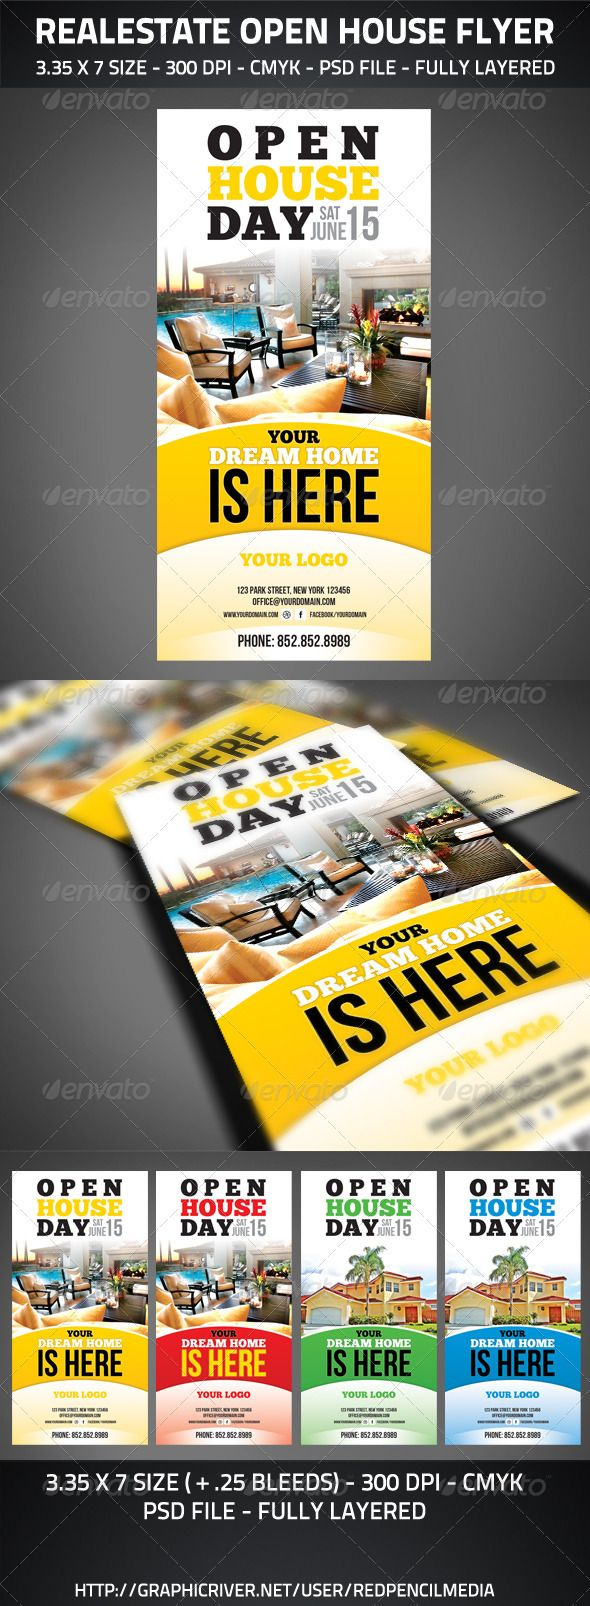 Real Estate Template%0A Realestate Open House Flyer